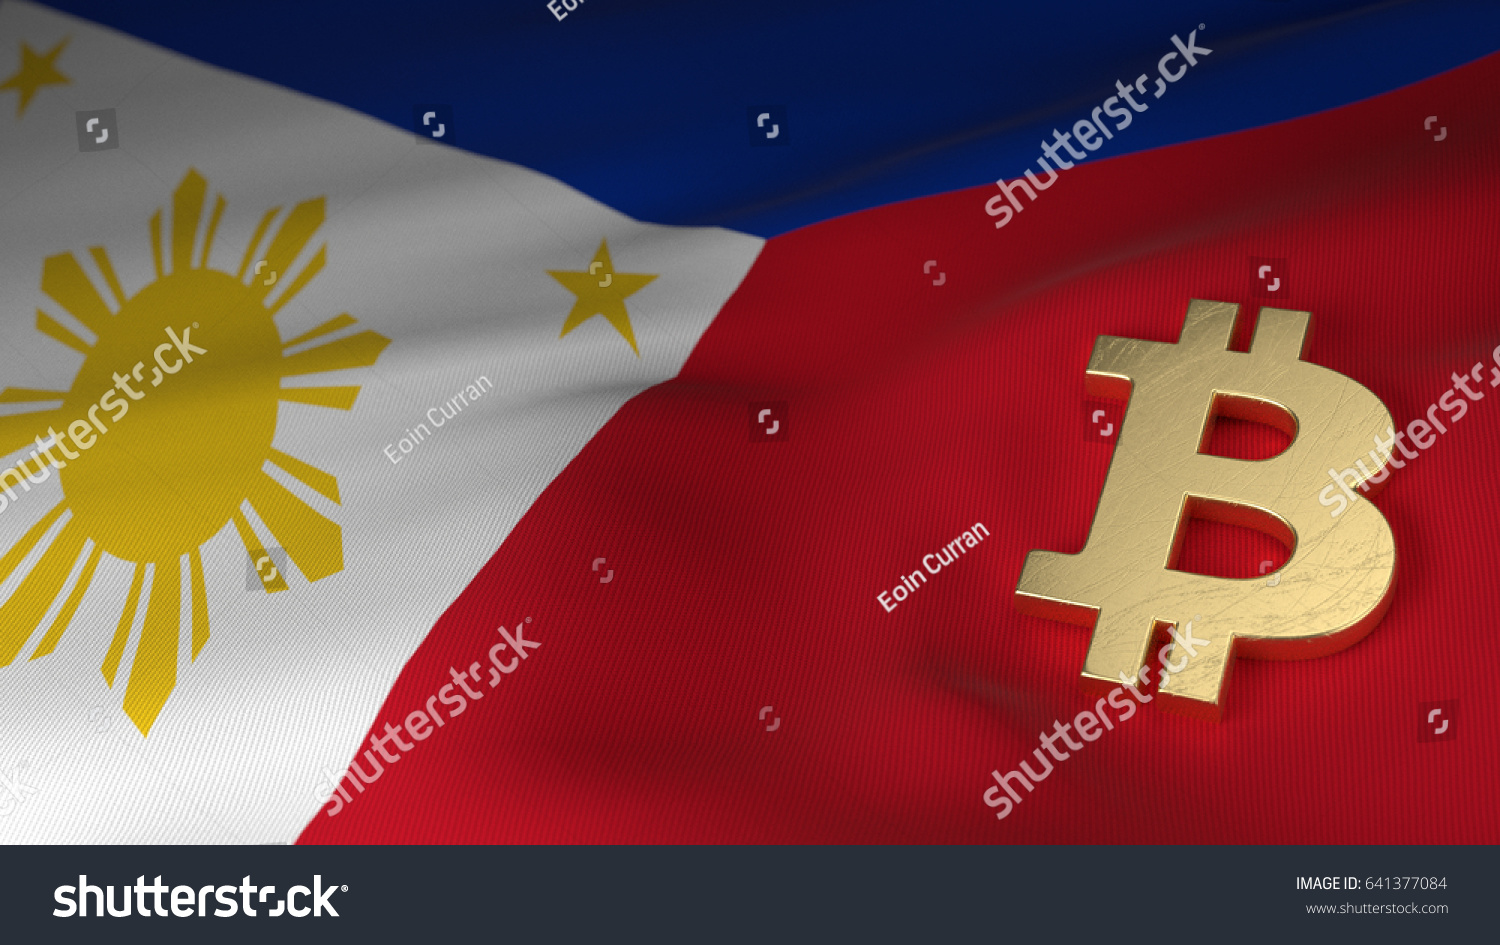 Bitcoin currency symbol on flag philippines stock photo 641377084 bitcoin currency symbol on flag of the philippines biocorpaavc Choice Image